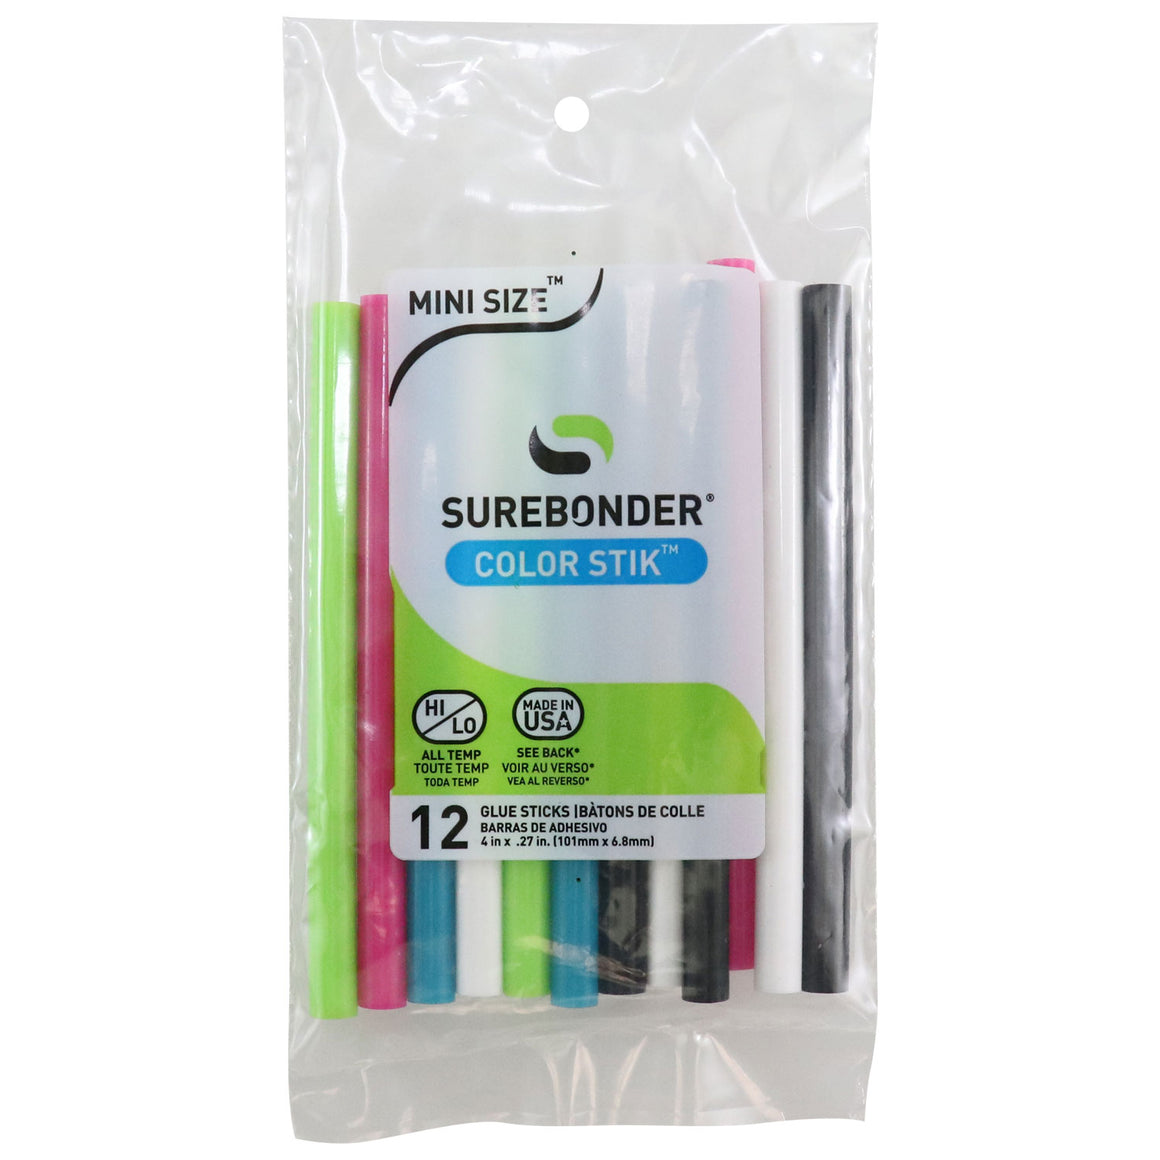 "Surebonder Color Glue Sticks, Pack of 12, Blue, Green, Pink, Black and White, Mini Size 4"", Made in USA, all temperatures"